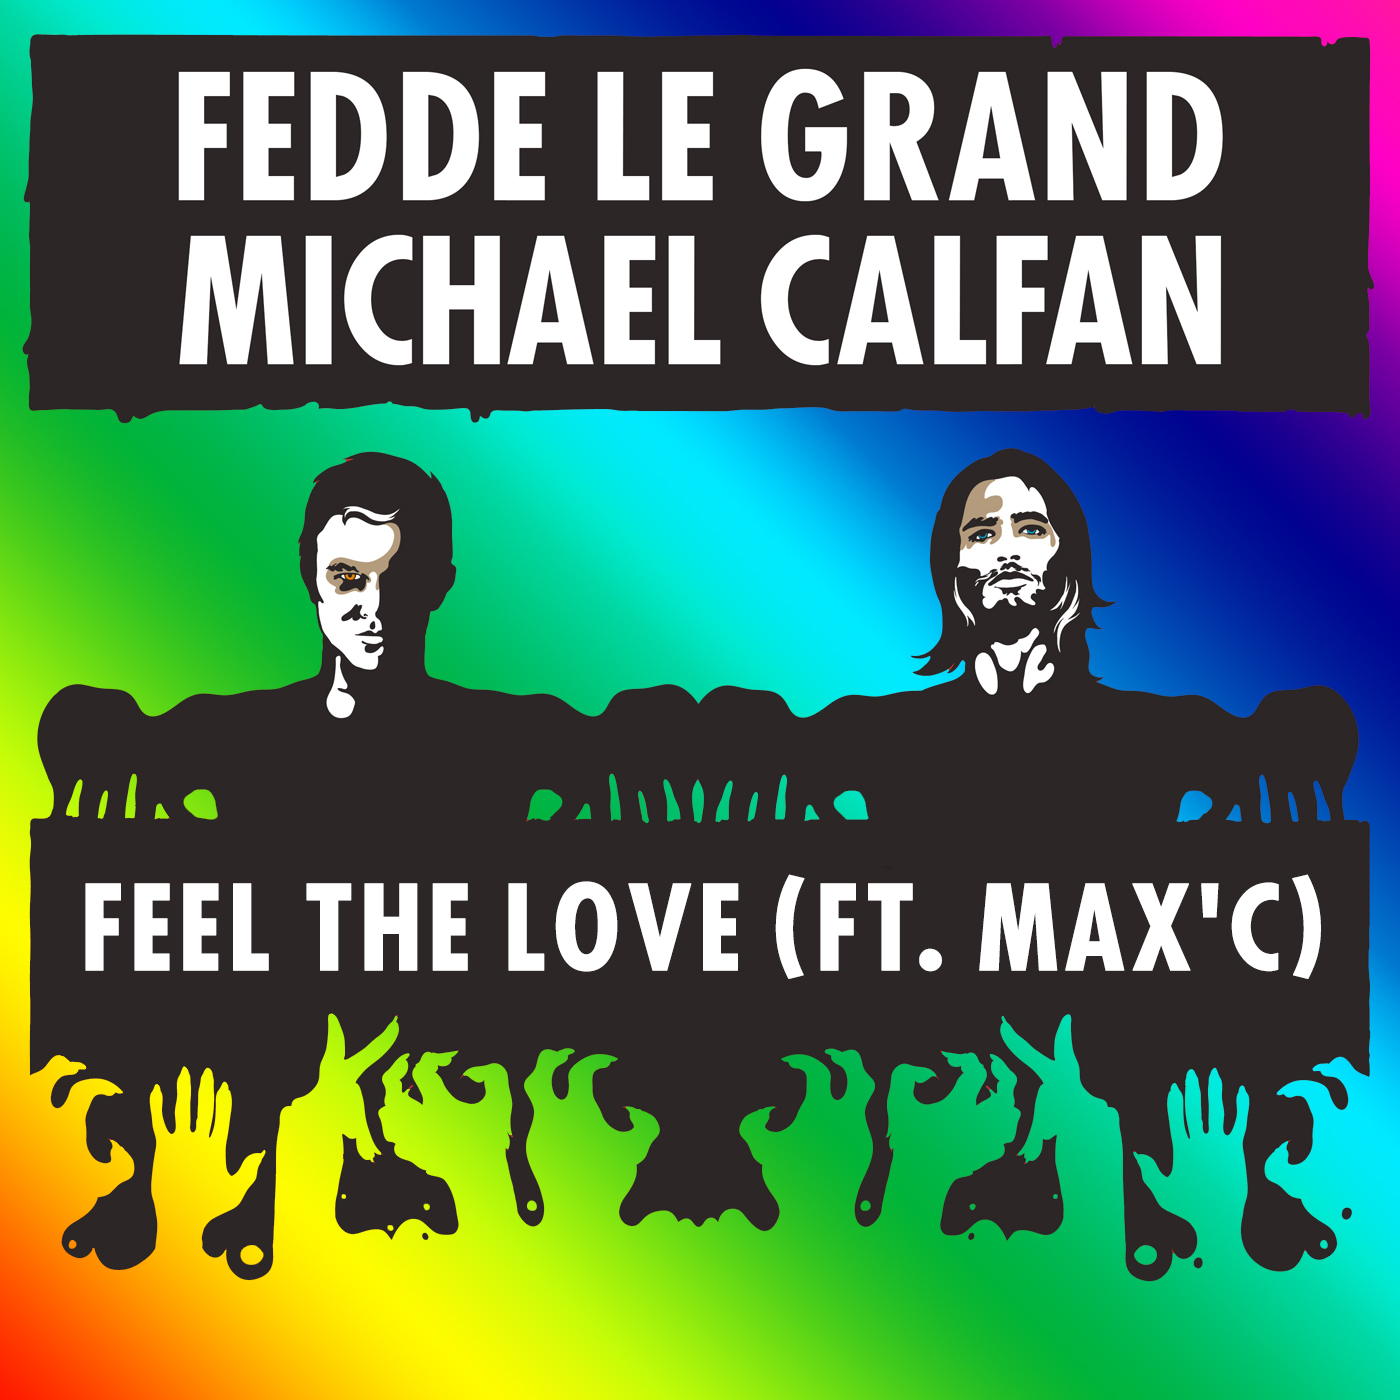 Fedde Le Grand & Michael Calfan Ft. Max'C - Feel The Love